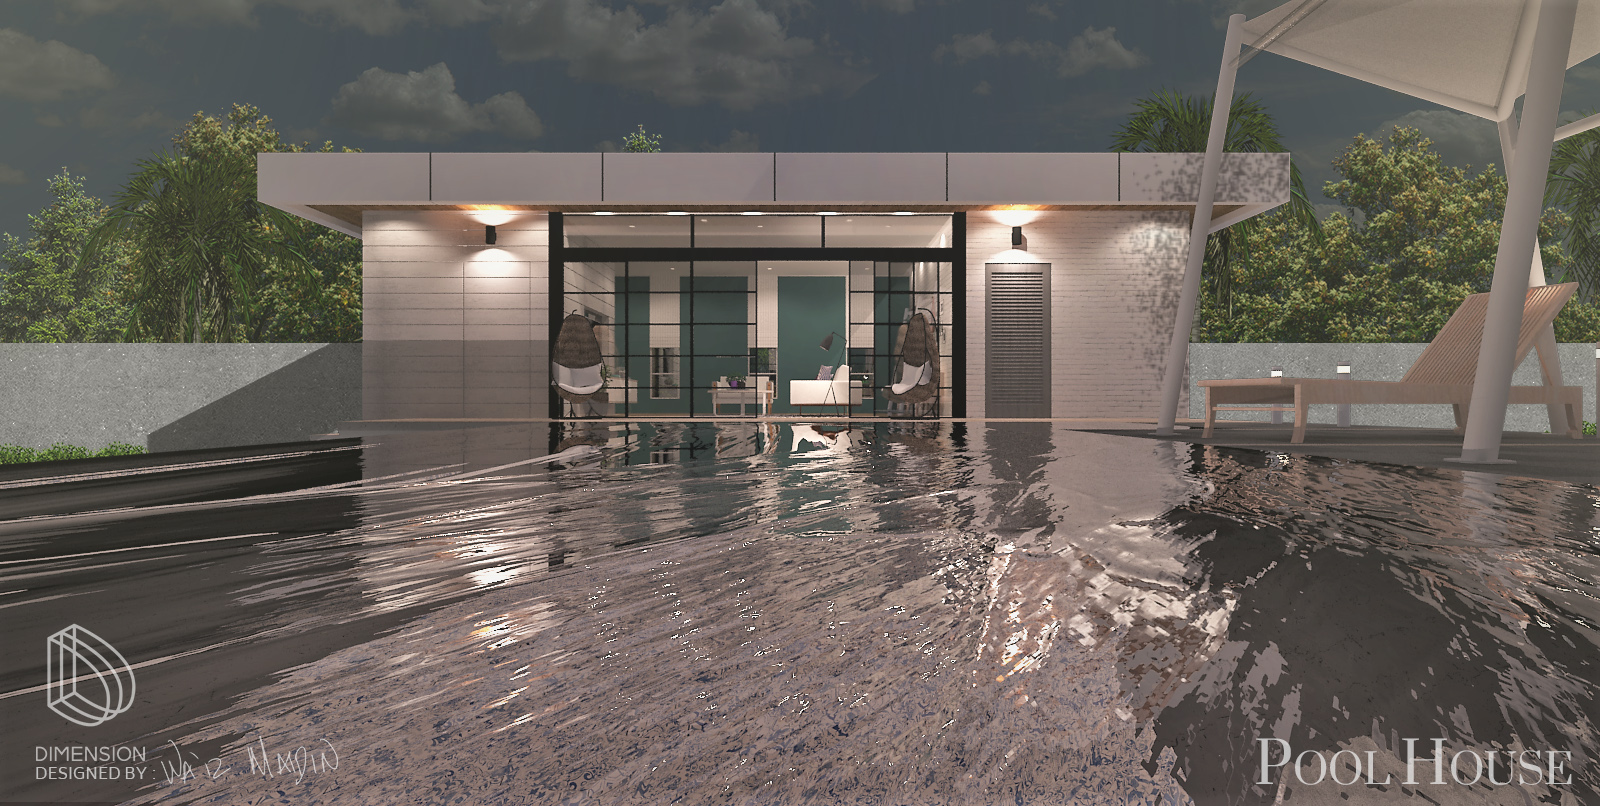 POOL HOUSE   Exterior and interior design